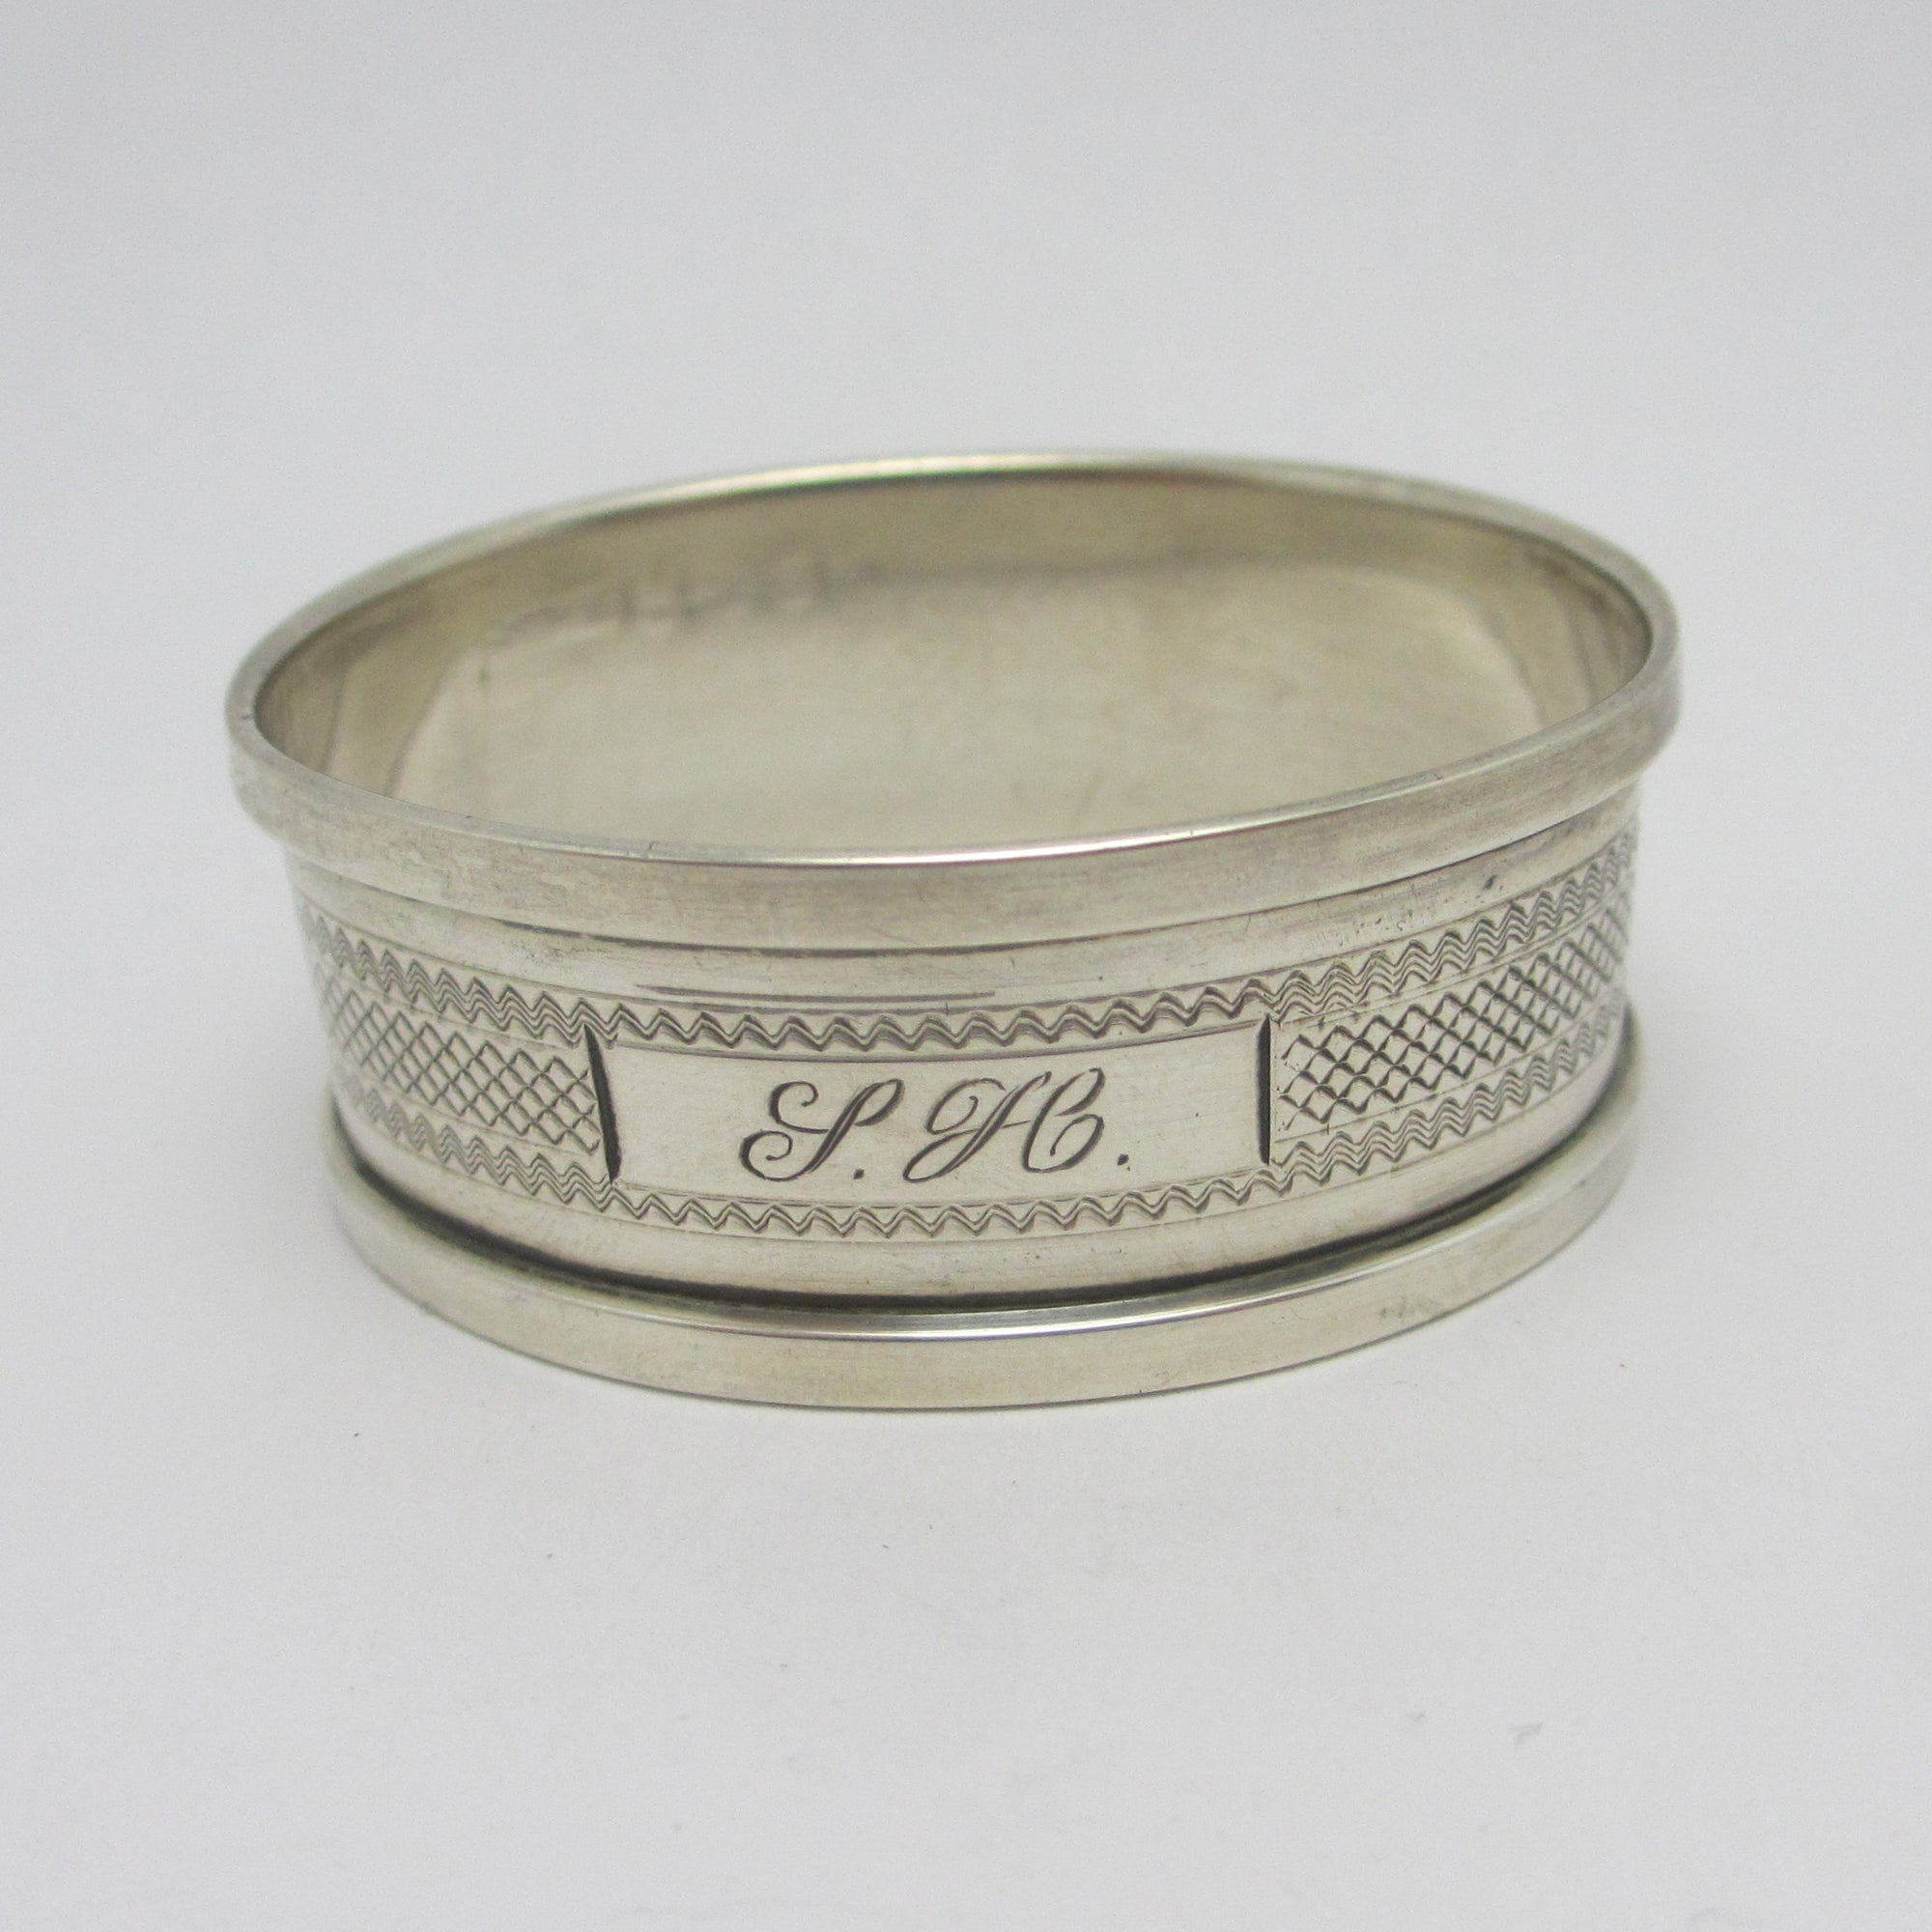 Inscribed Napkin Ring Sterling Silver Vintage Art Deco 1934 English